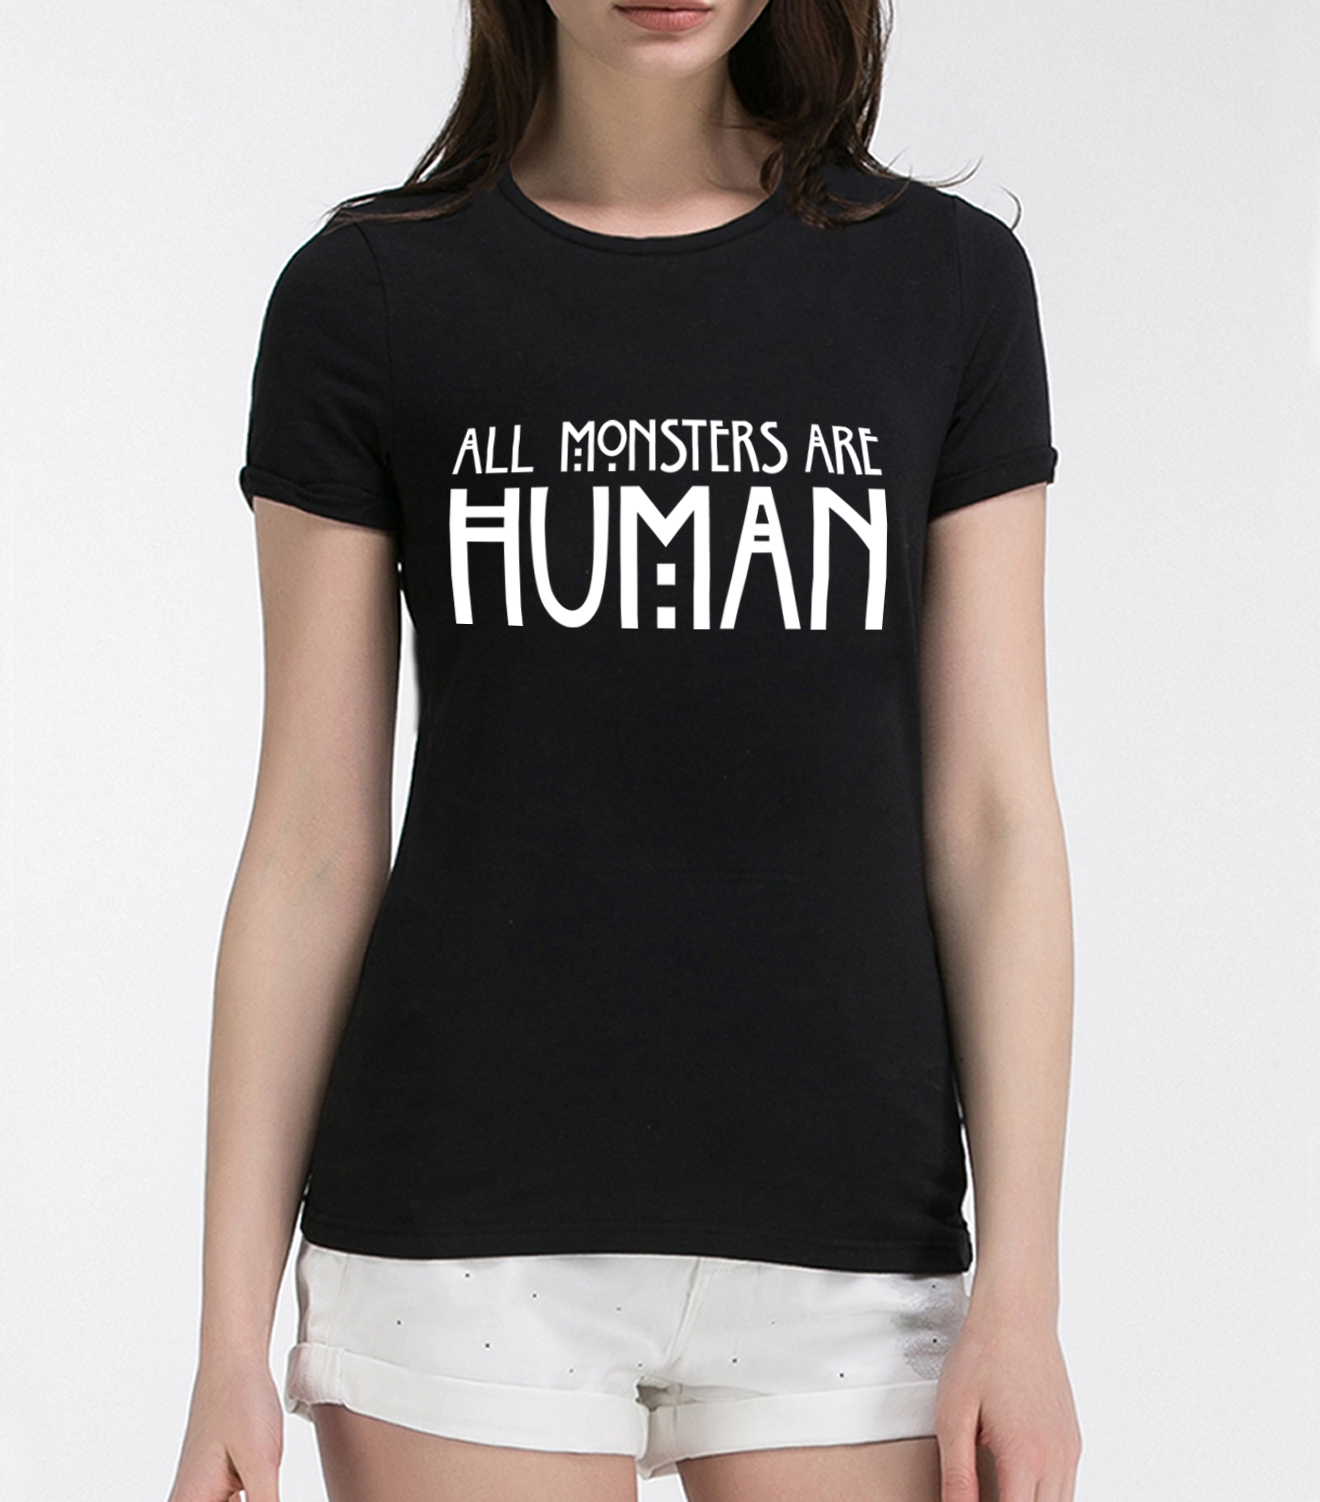 Black t shirt girl - 2016 All Monsters Are Human Women Black Cotton T Shirt Girl Tops Tee Shirt T